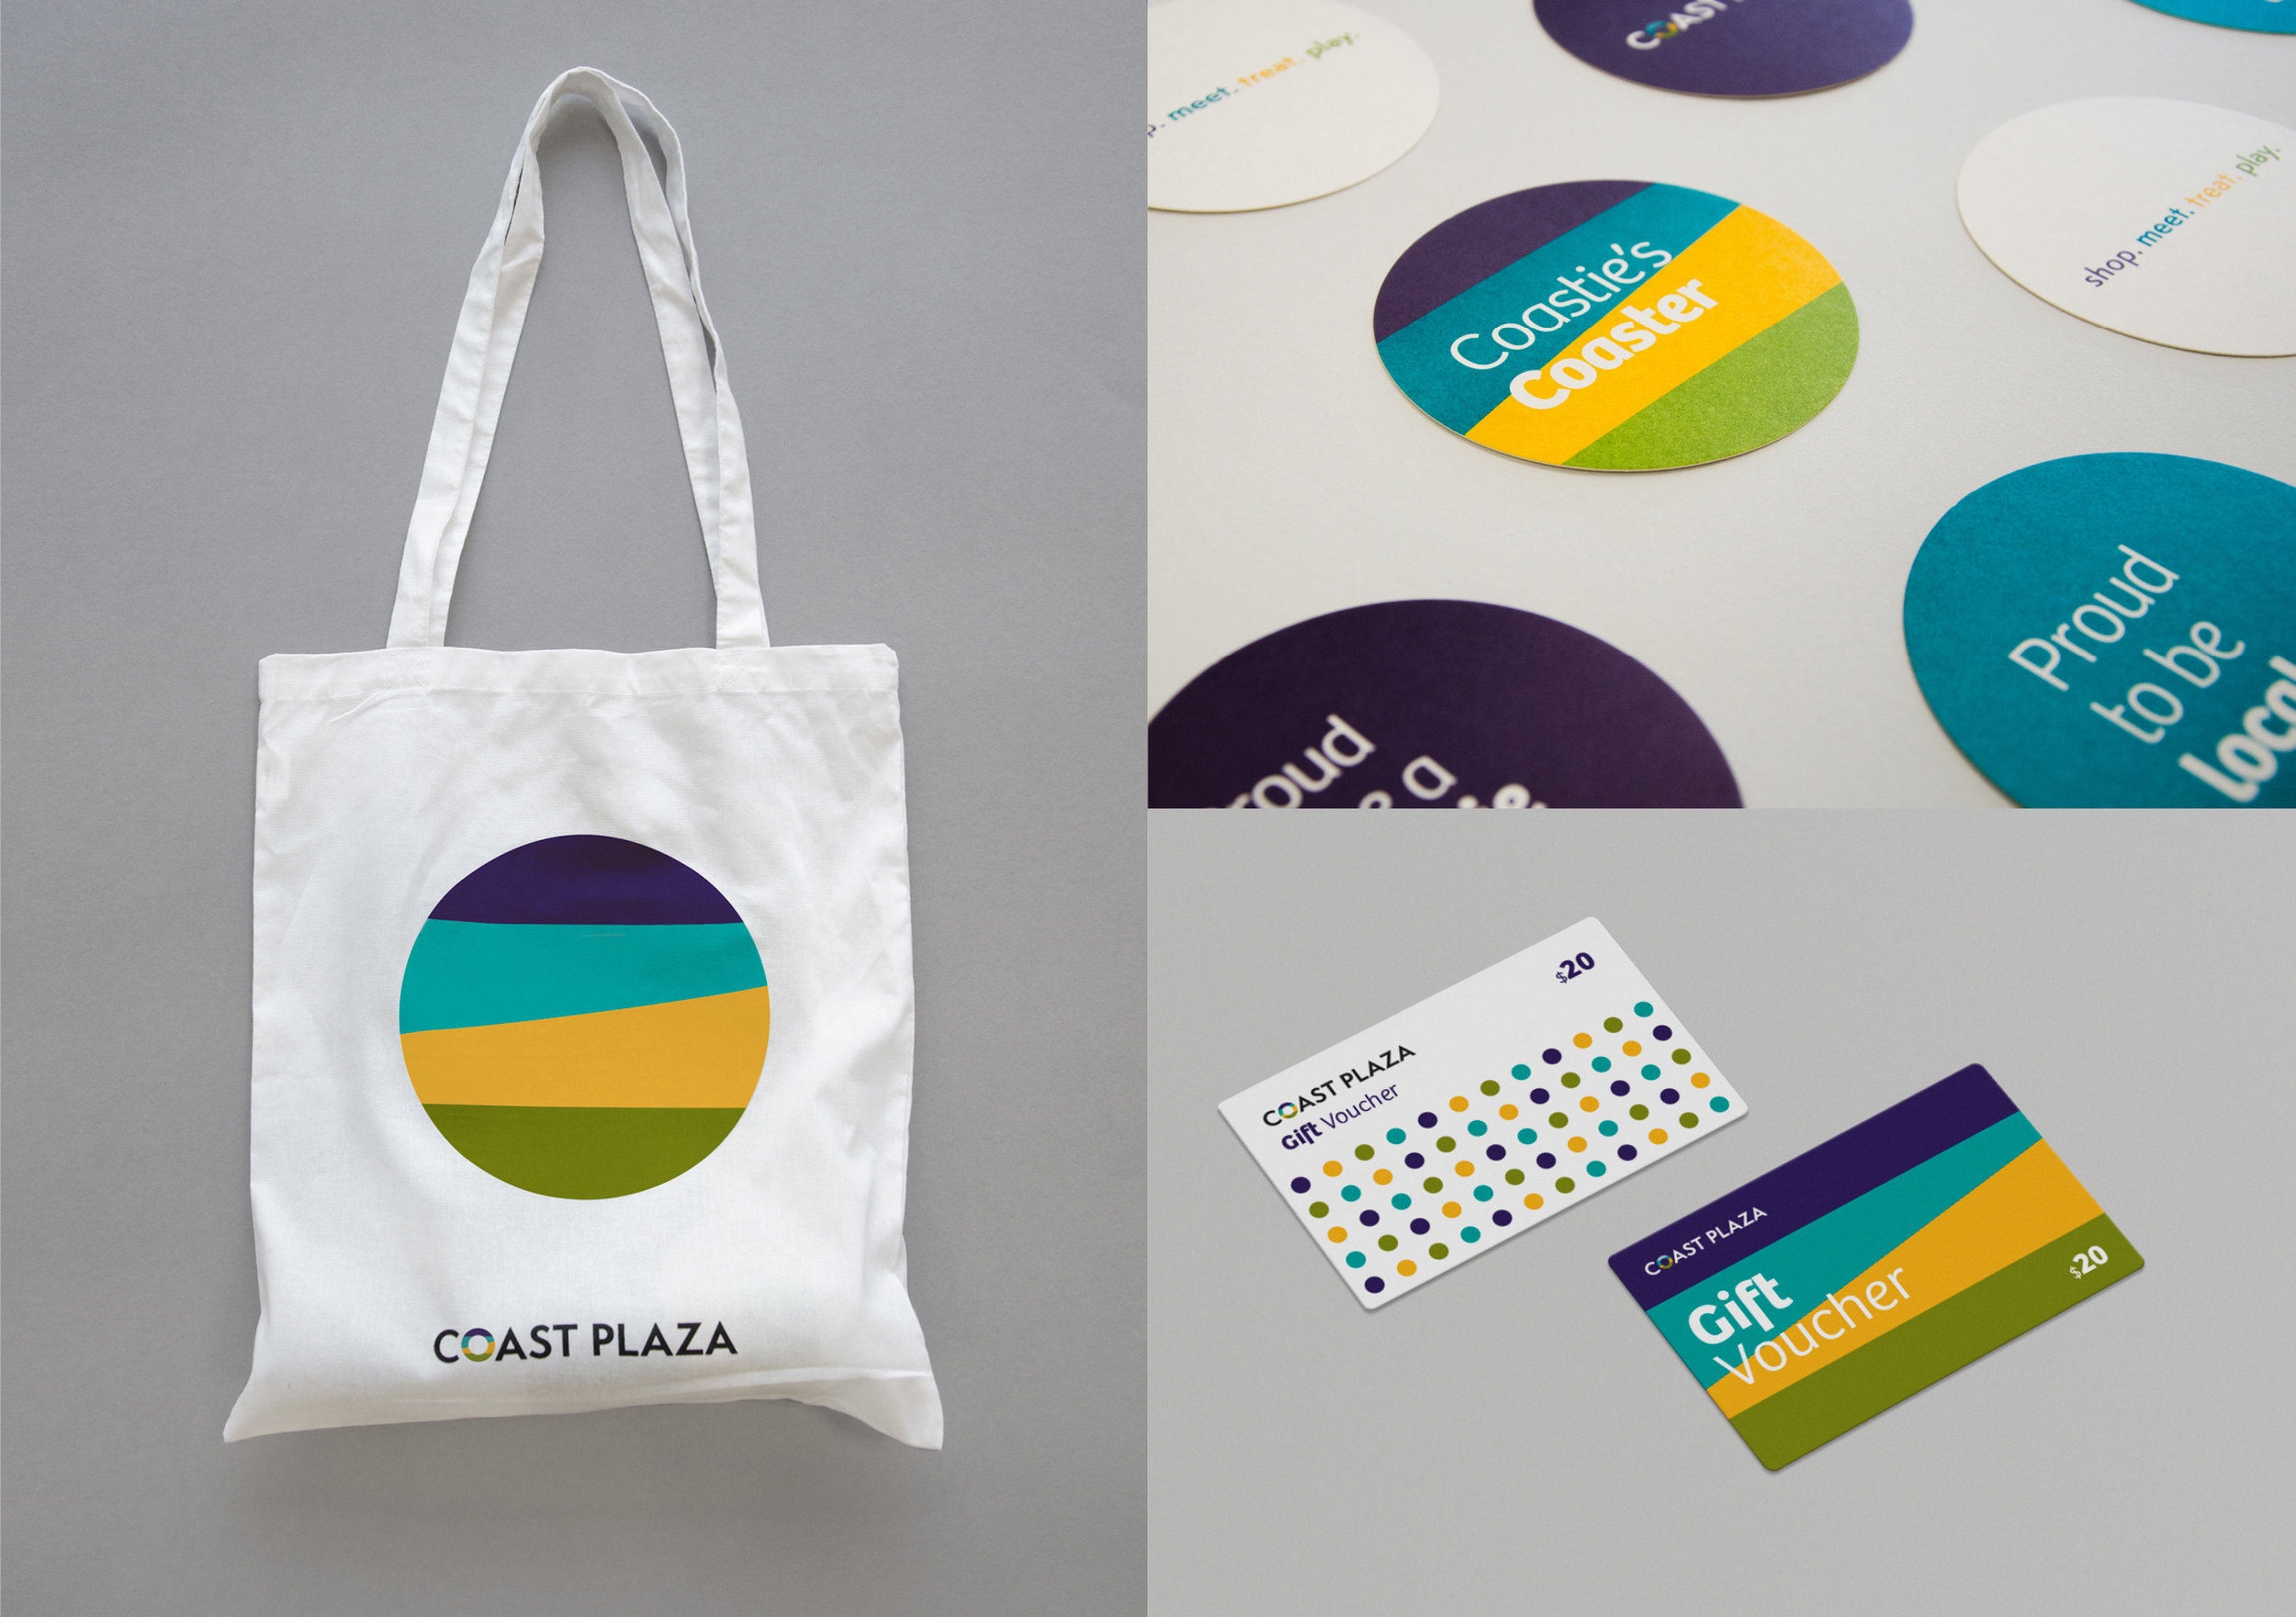 Coast Plaza tote bag, coasters and gift cards